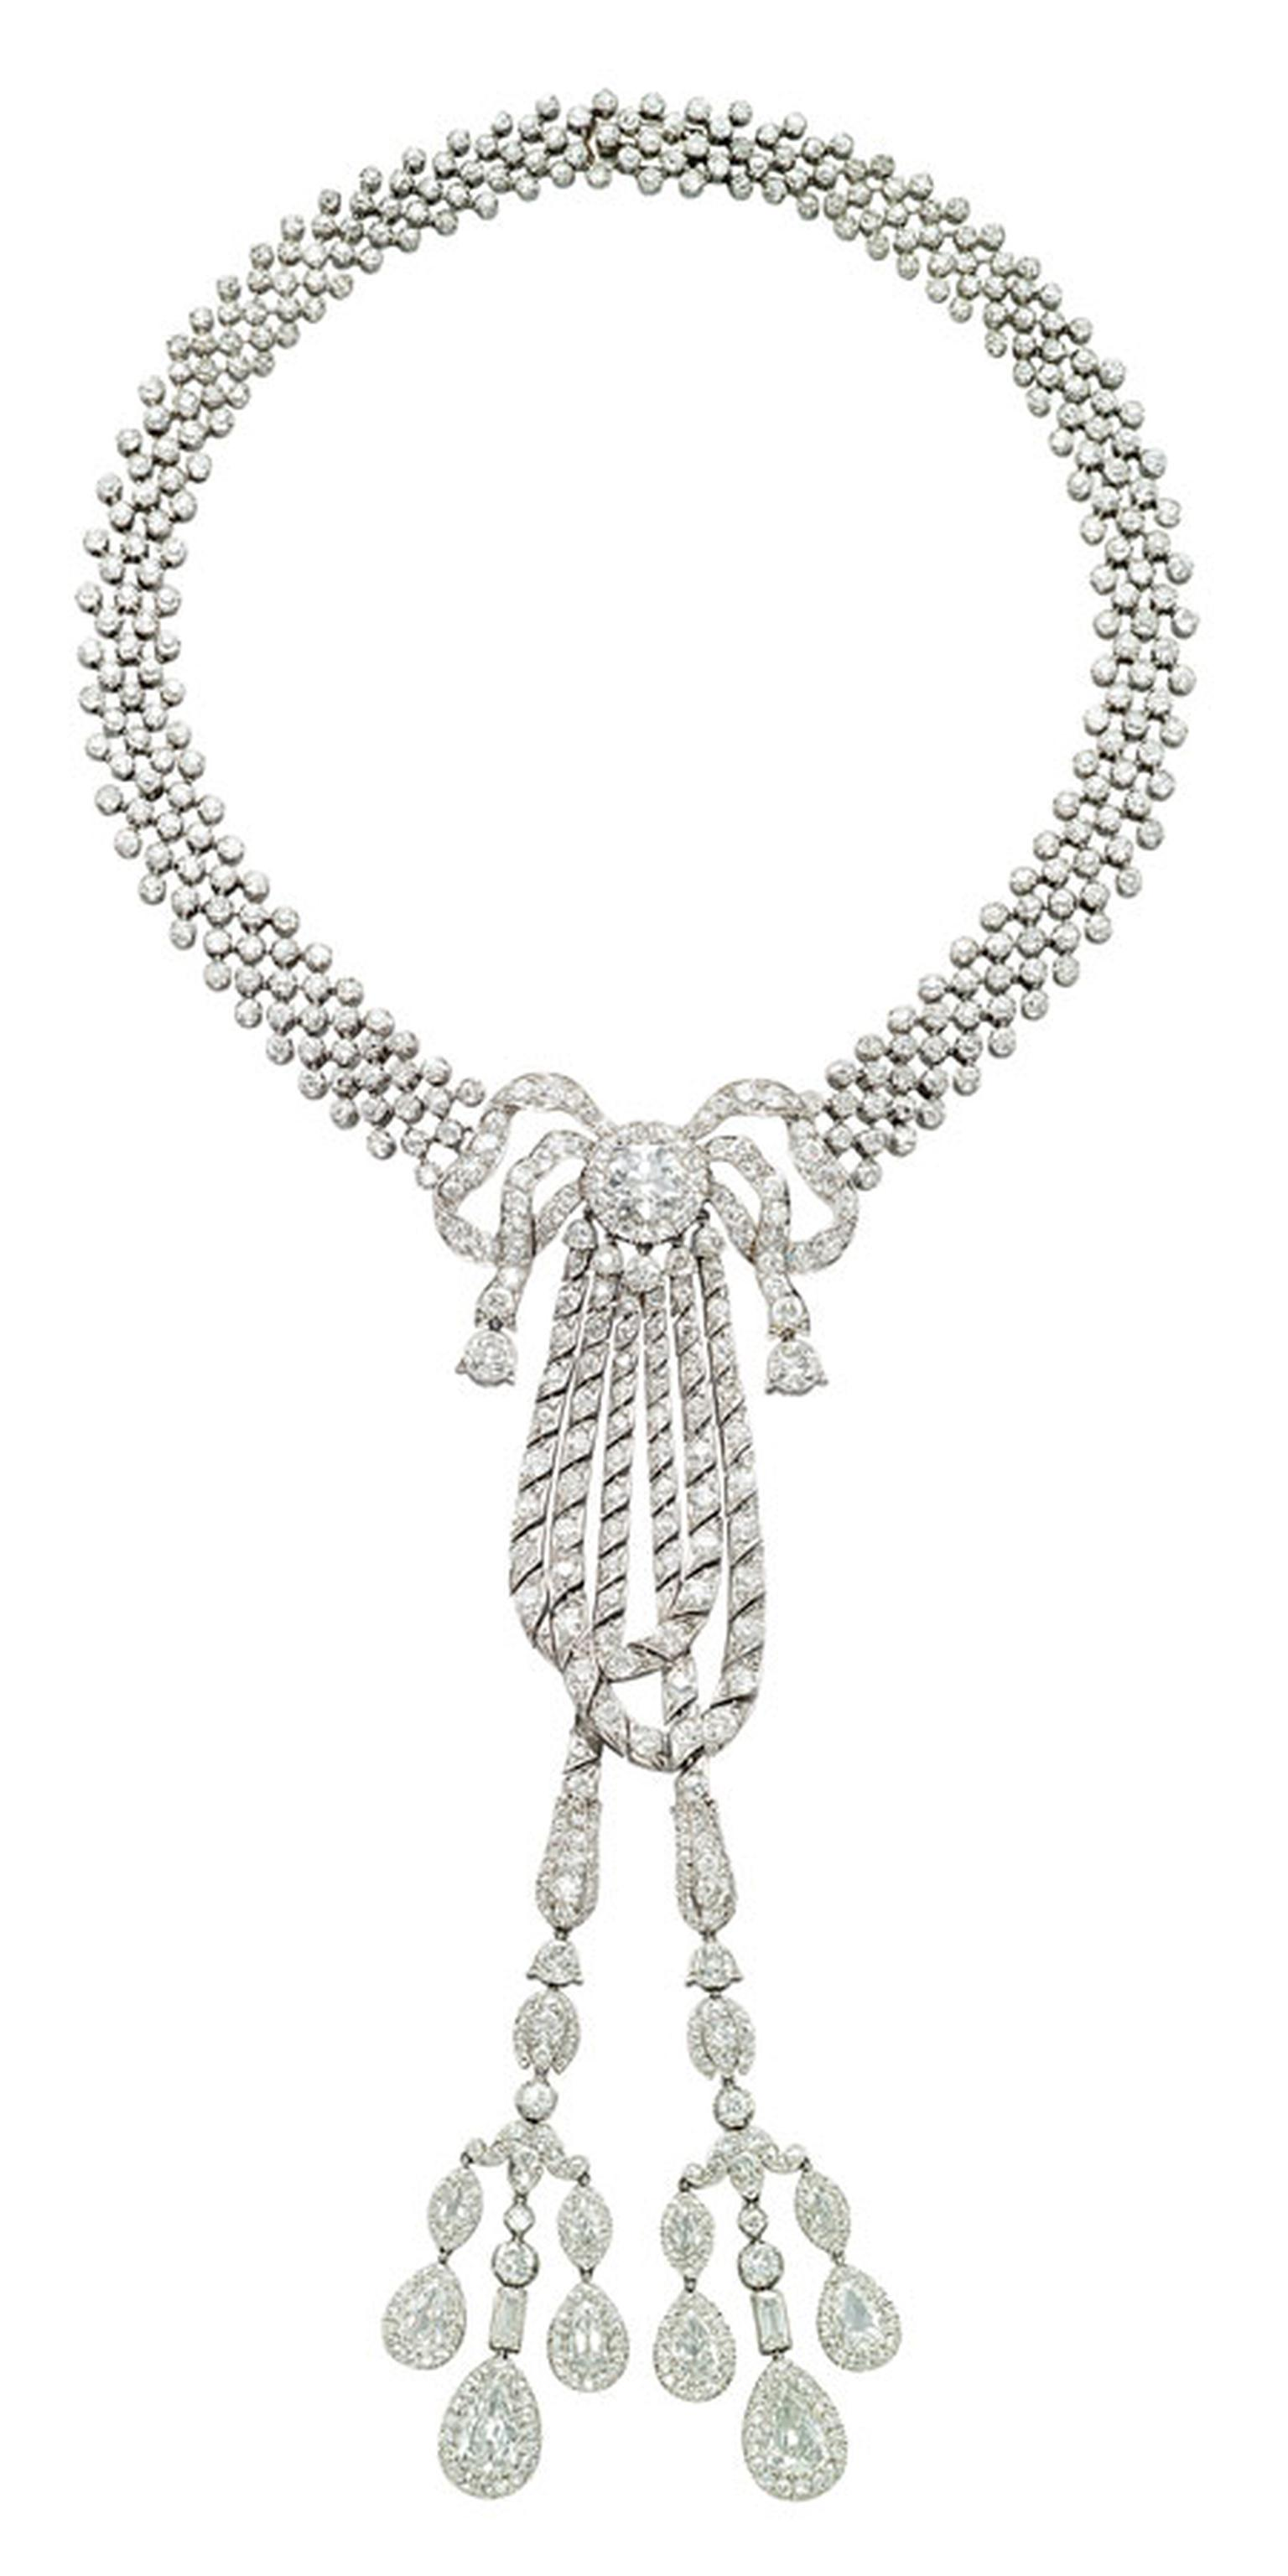 Christies A-Belle-Epoque-diamond-lavaliere-necklace,-by-Cartier,-1911